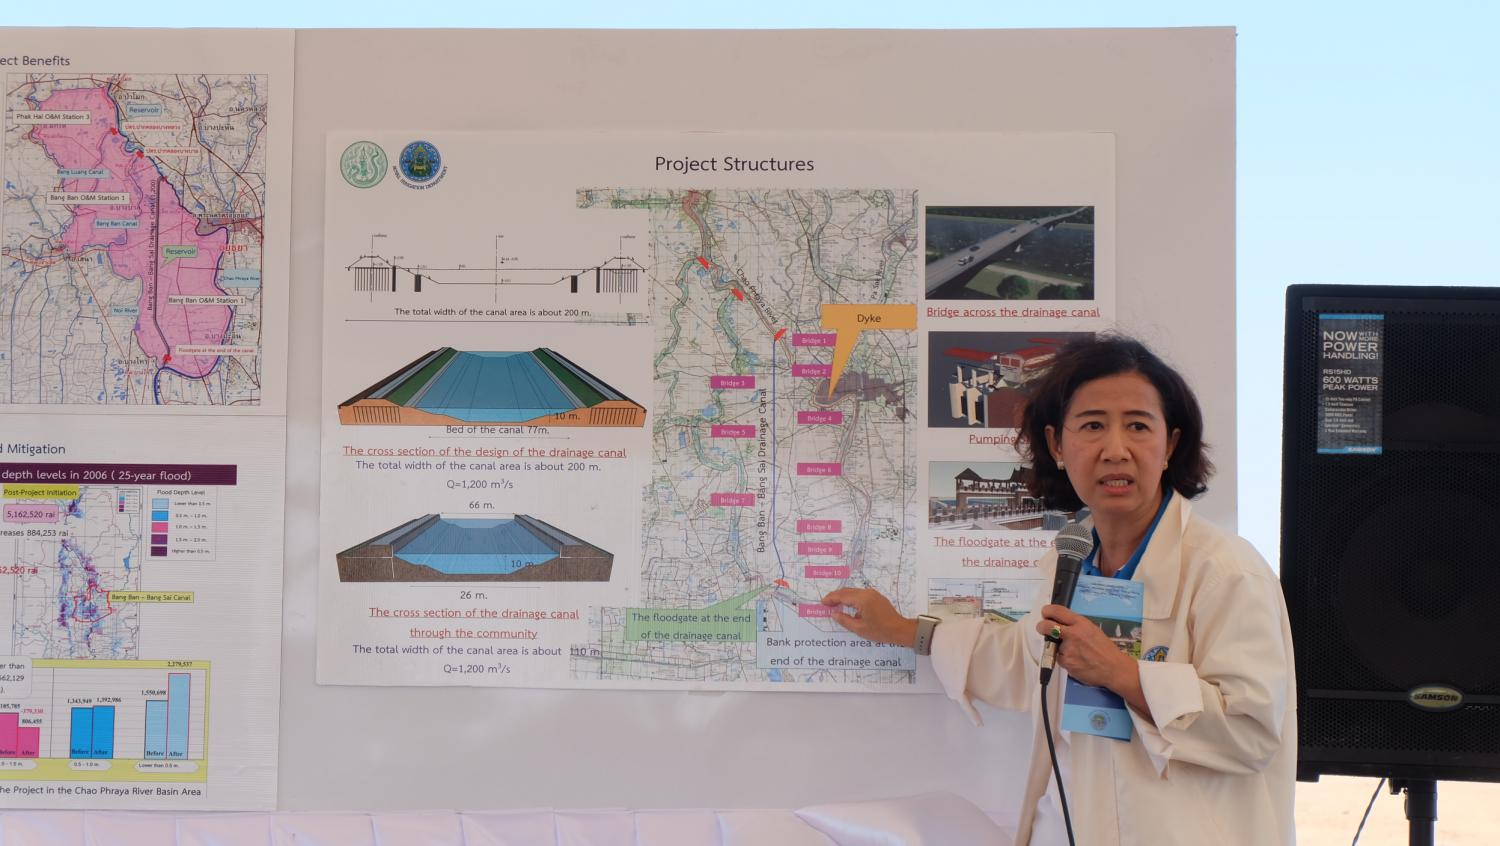 Textbook example: Phattaporn Mekpruksawong, an expert in civil engineering at the RID, says a new diversion canal will help mitigate recurrent flooding in Ayutthaya.